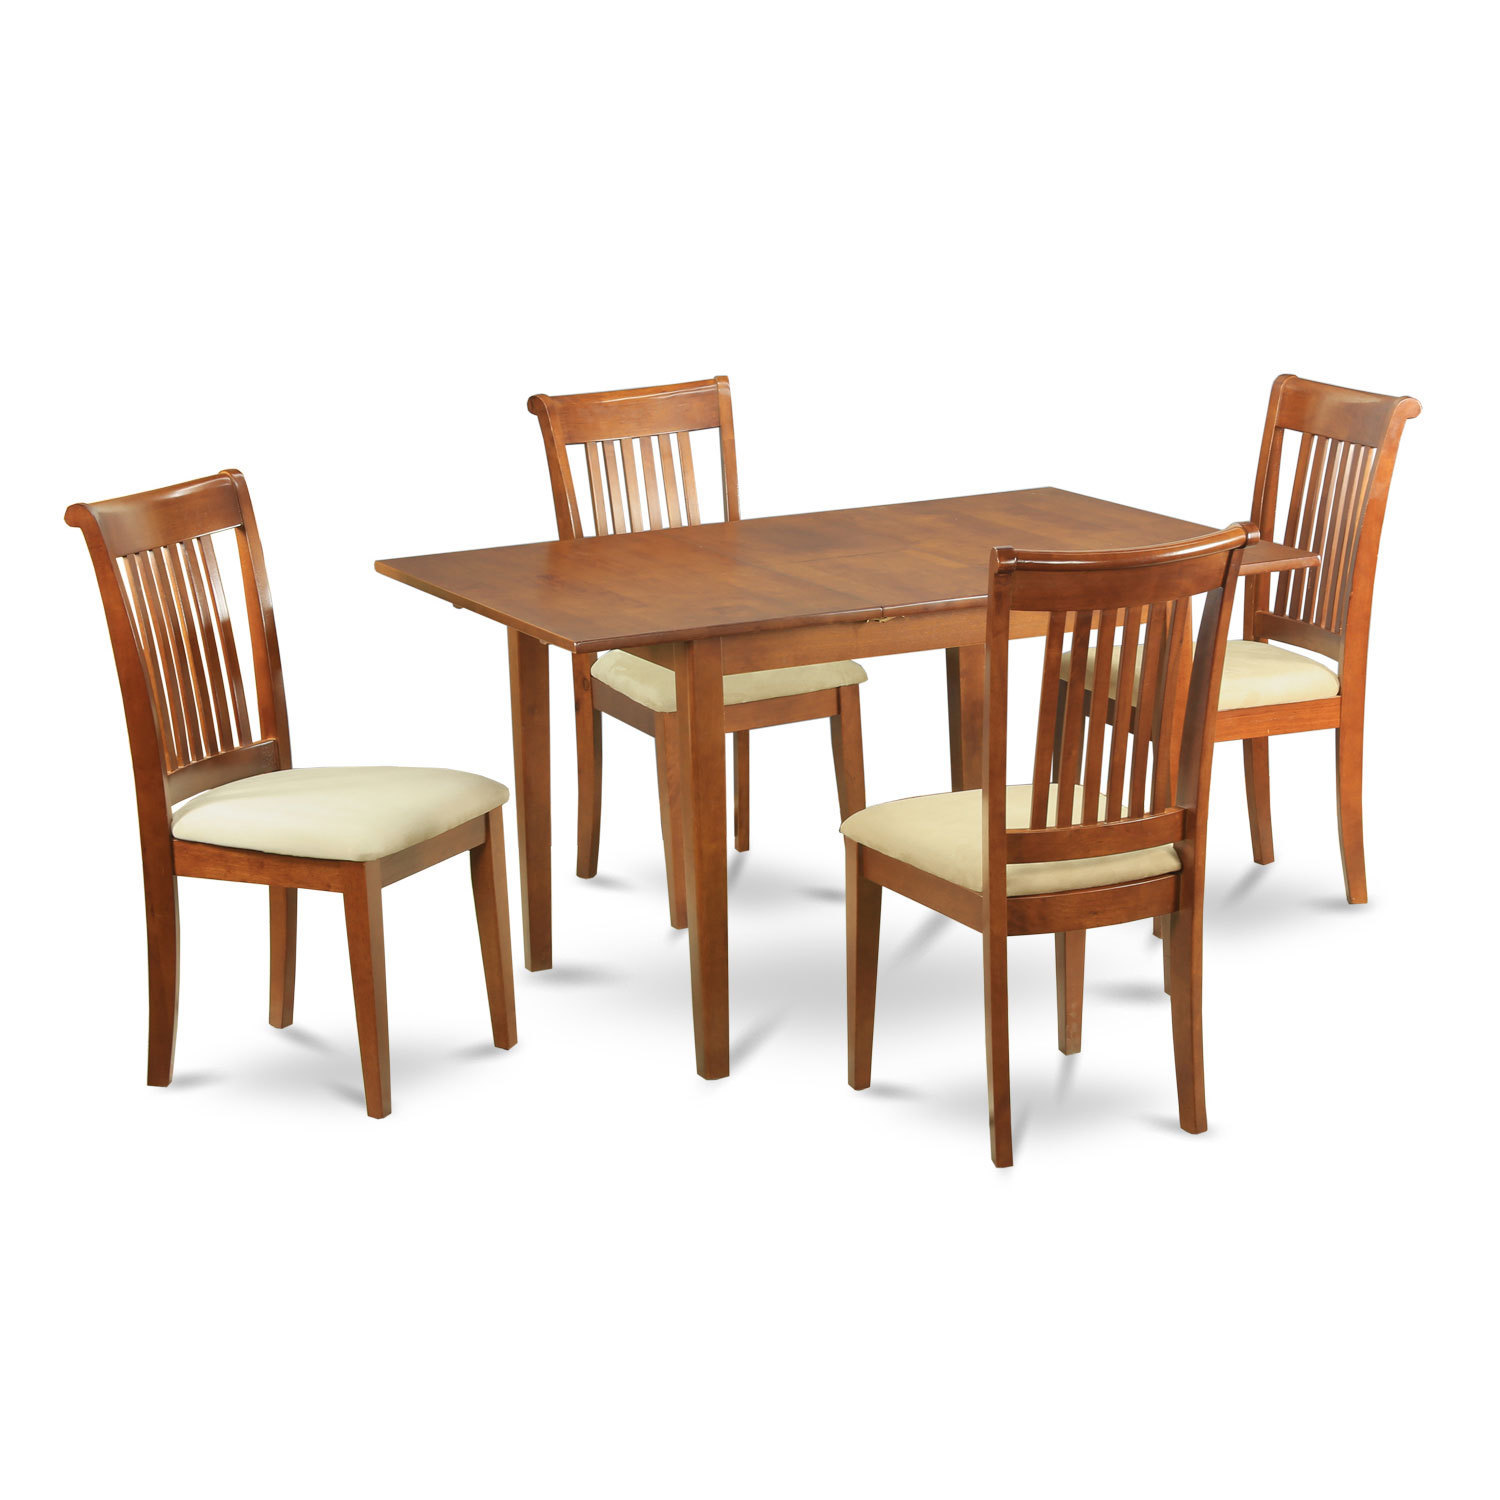 Small dinette set design homesfeed for Small dining table with chairs